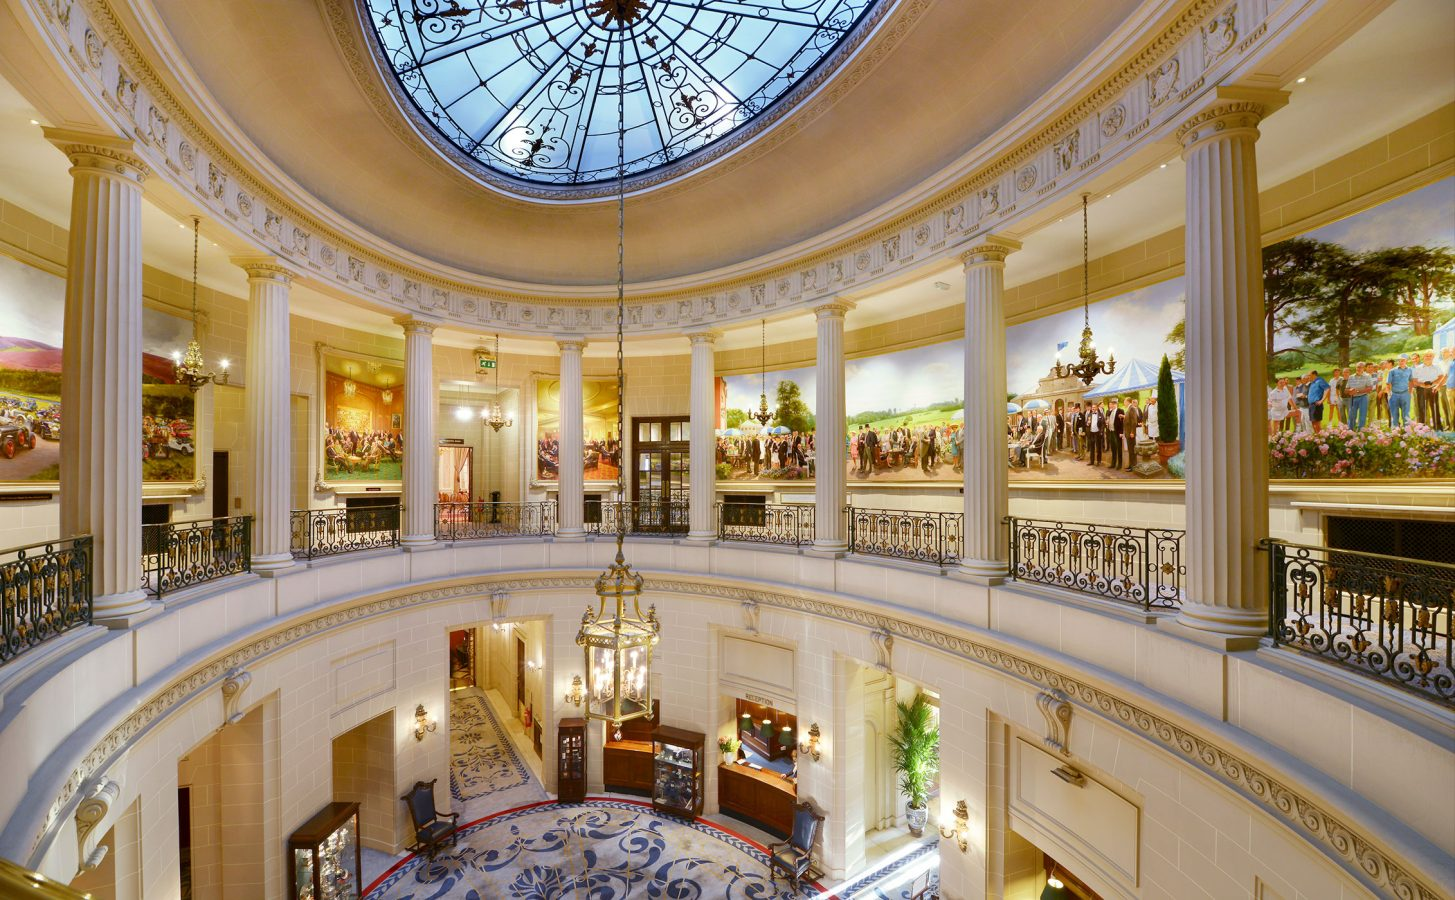 RAC Club Rotunda